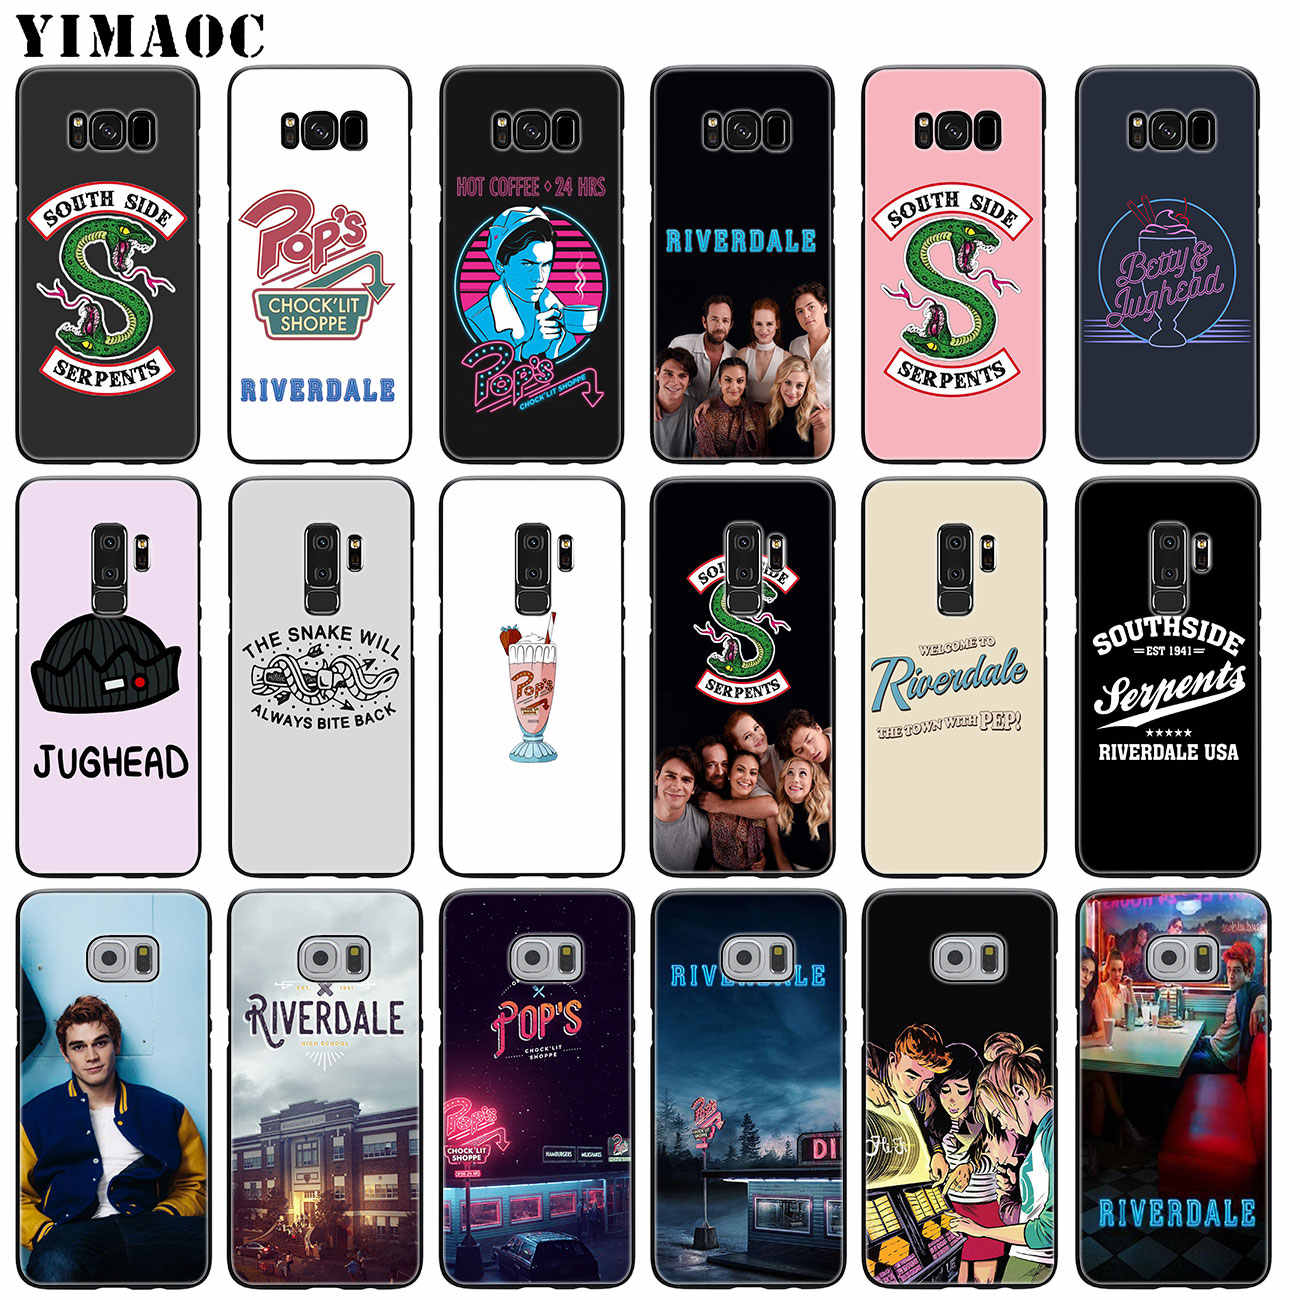 YIMAOC Riverdale South Side Serpents Soft Silicone Phone Case for Samsung Galaxy S10 Plus S9 S8 Plus S6 S7 Edge S10e Black Cover